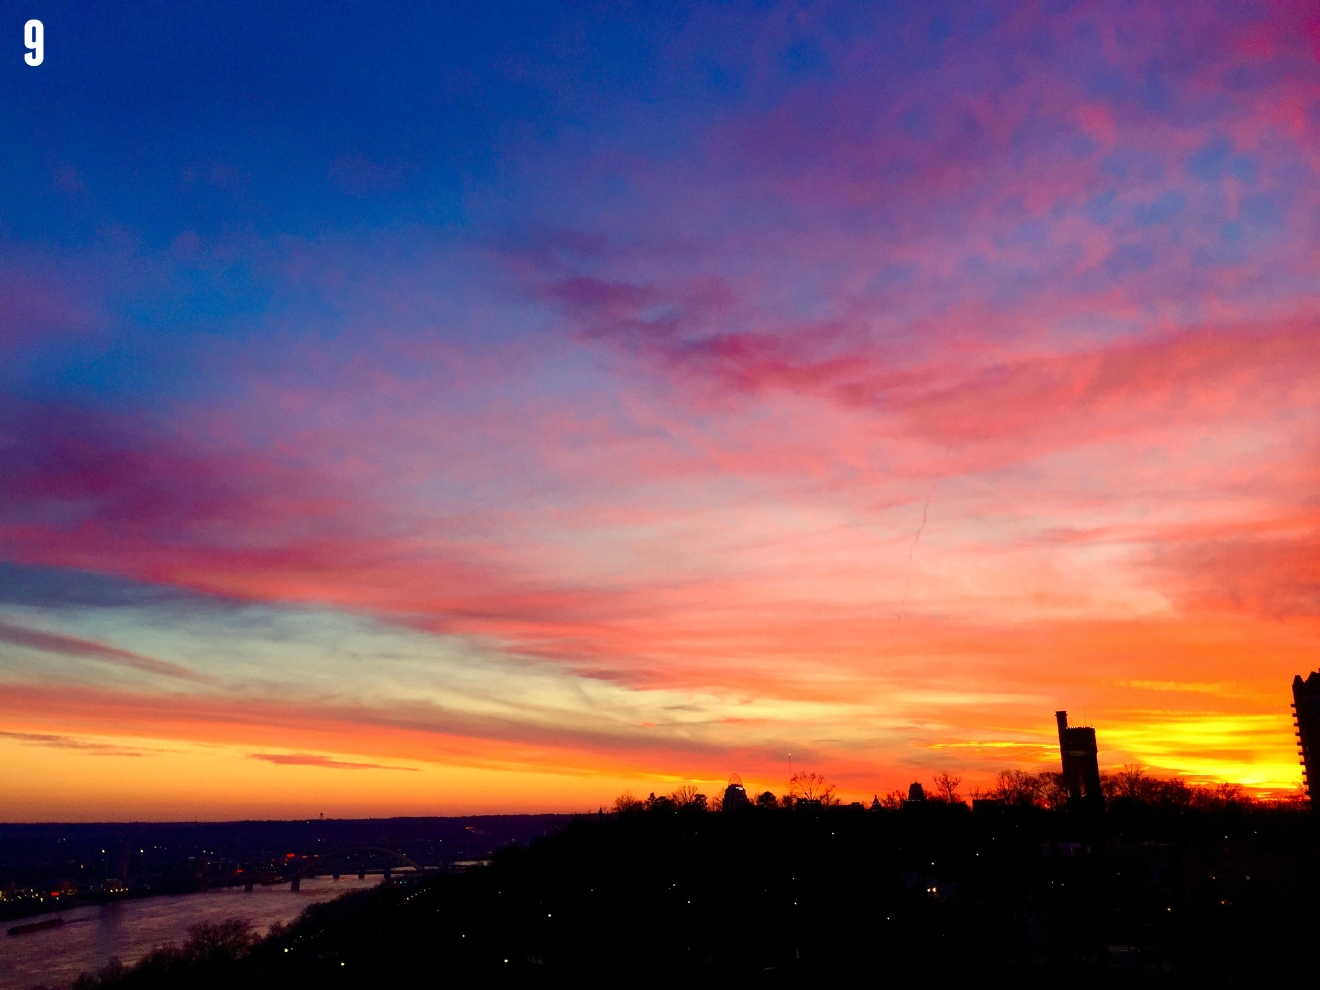 #9 - Just gonna stop right here and soak up this view. Woah... The sunsets lately. Hot damn. / Image: Leah Zipperstein, Cincinnati Refined